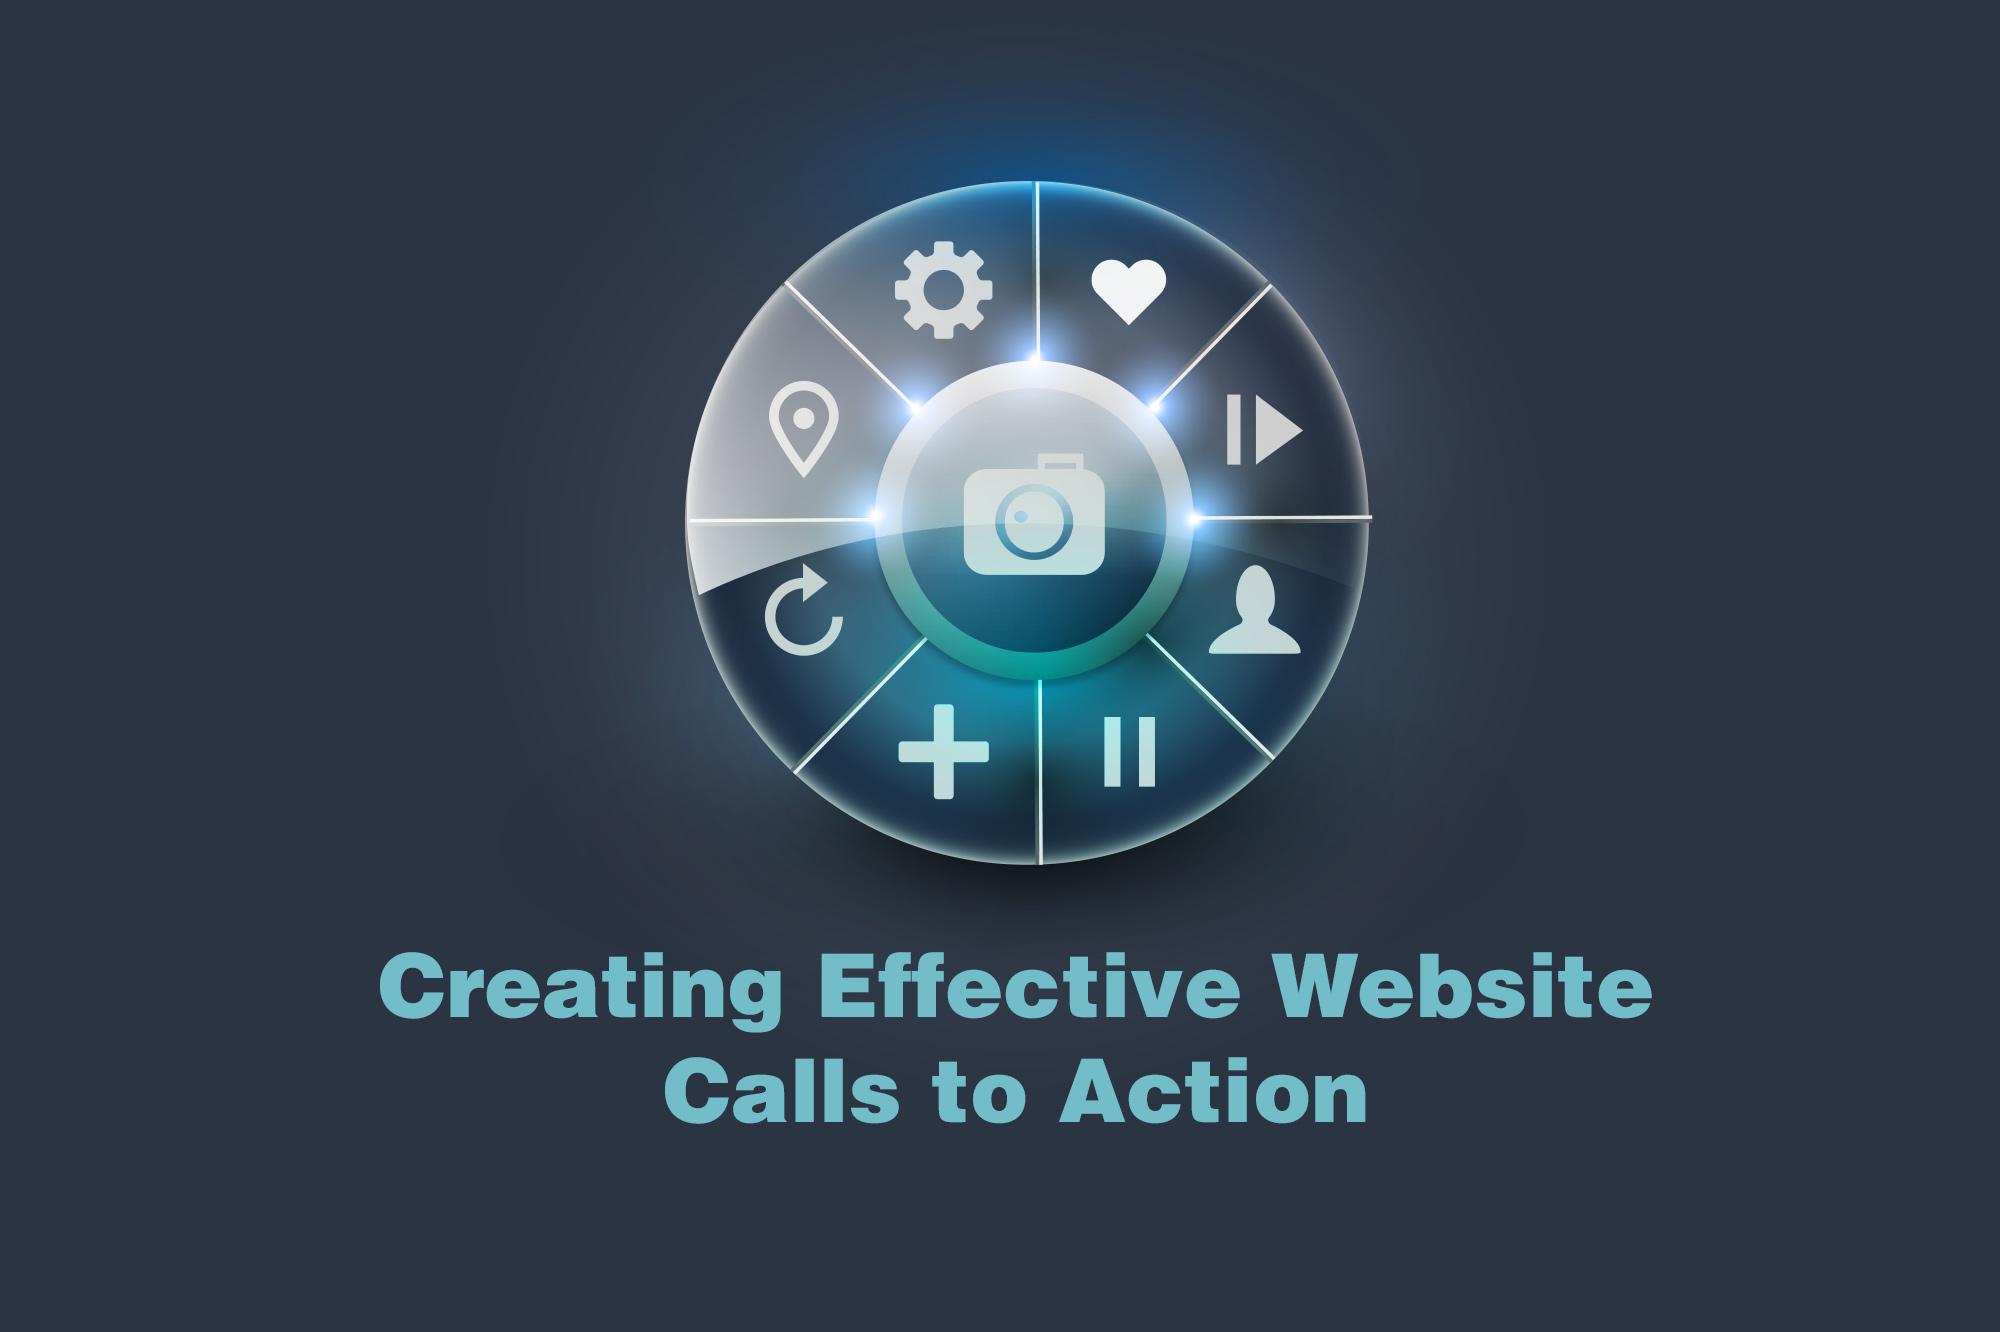 Creating Effective Website Calls to Action